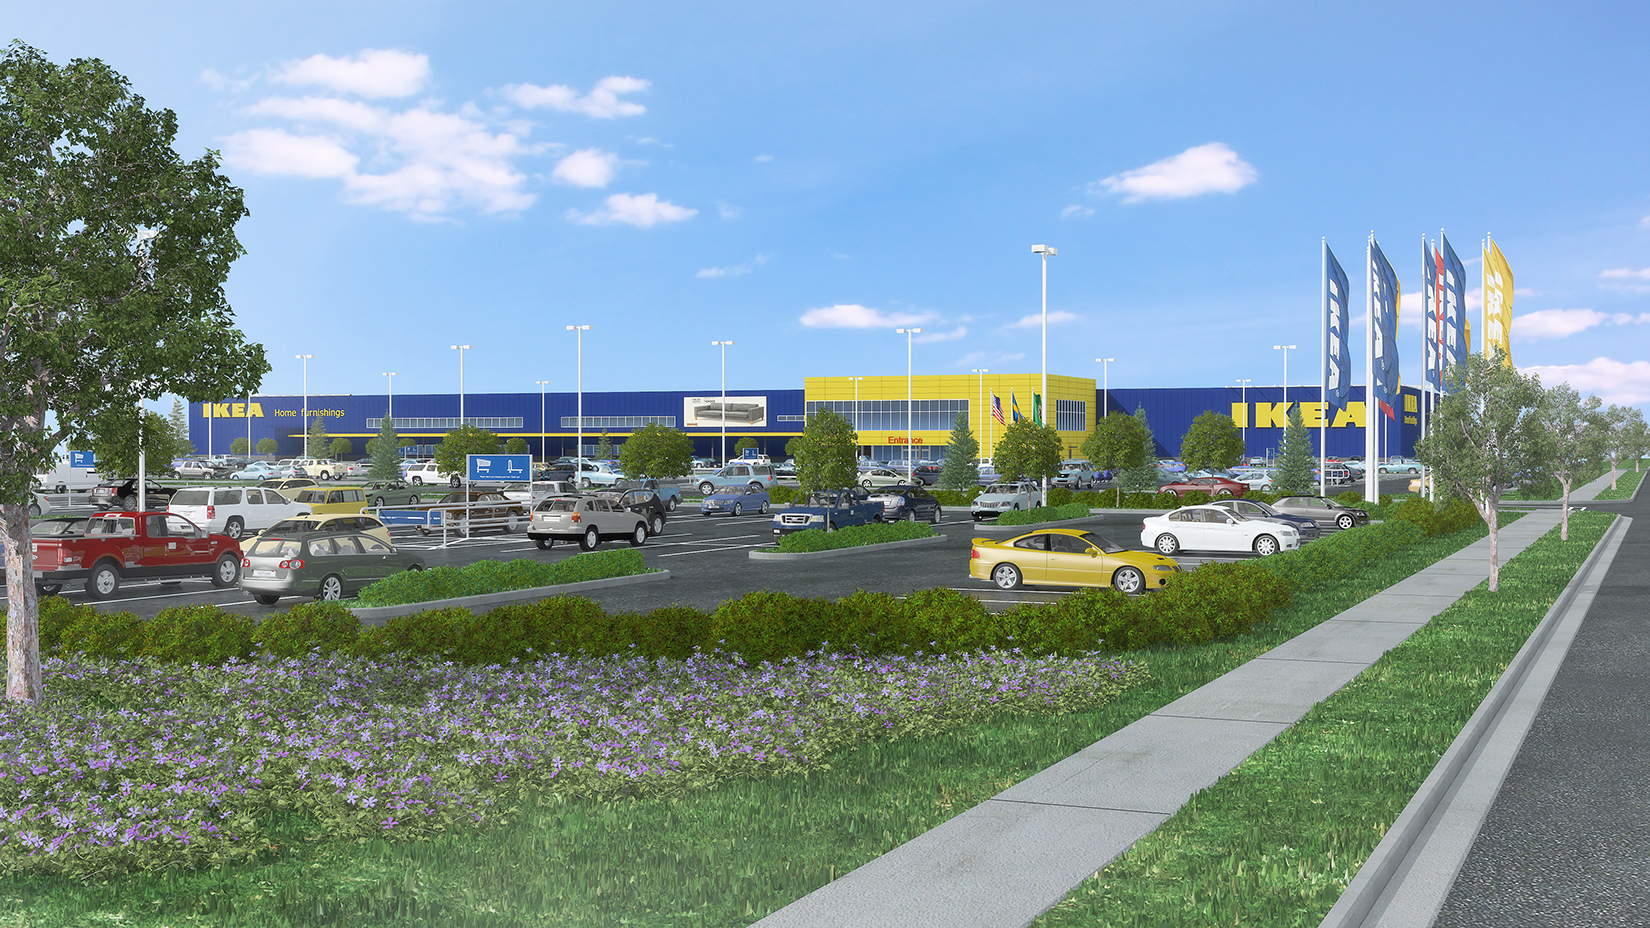 IKEA Begins Demolition of Parking Structure in Renton, WA to